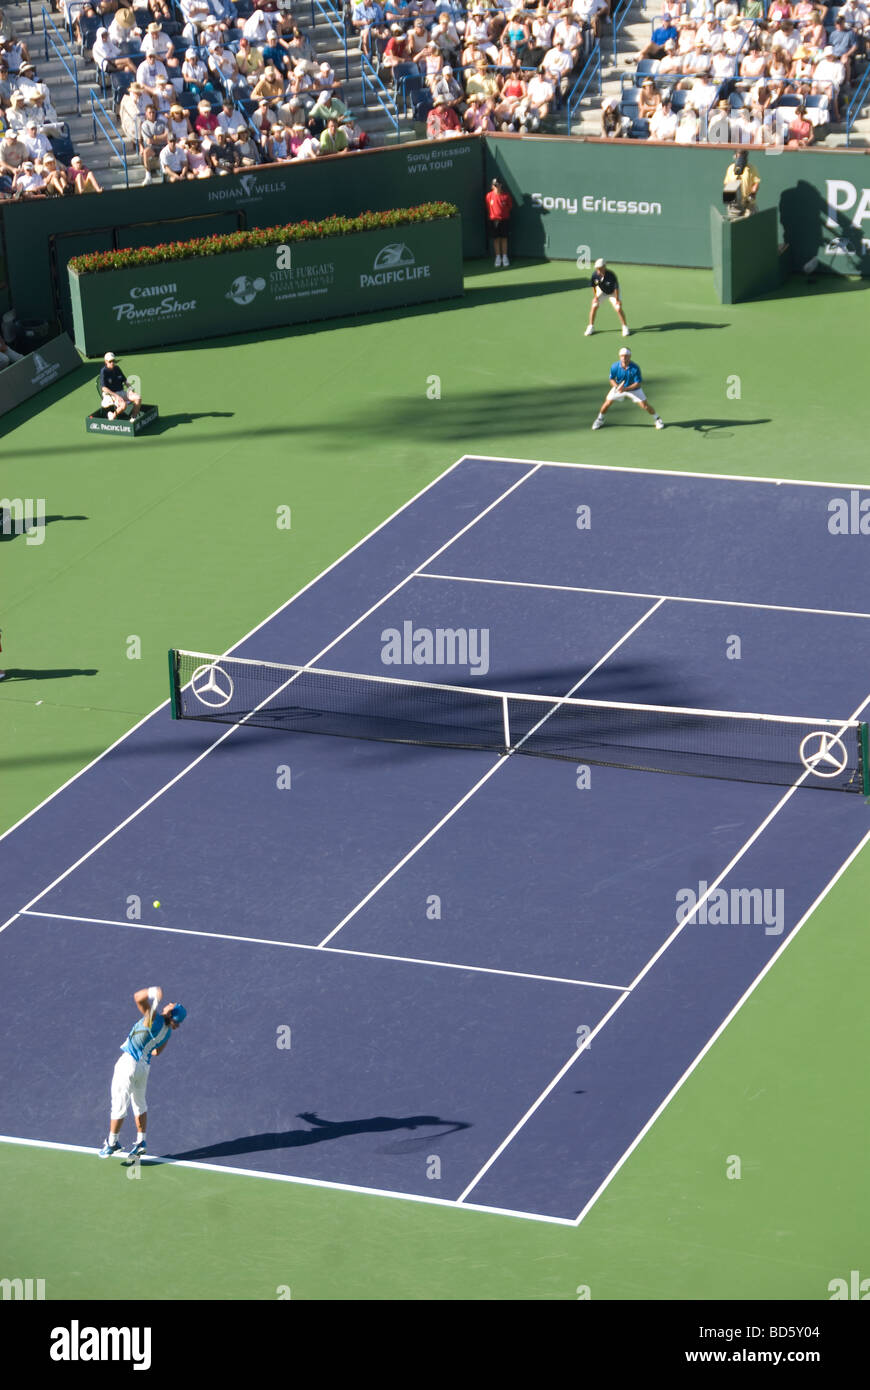 Tennis Tournament at Indian Wells Palm Springs Coachella Valley Southern California - Stock Image